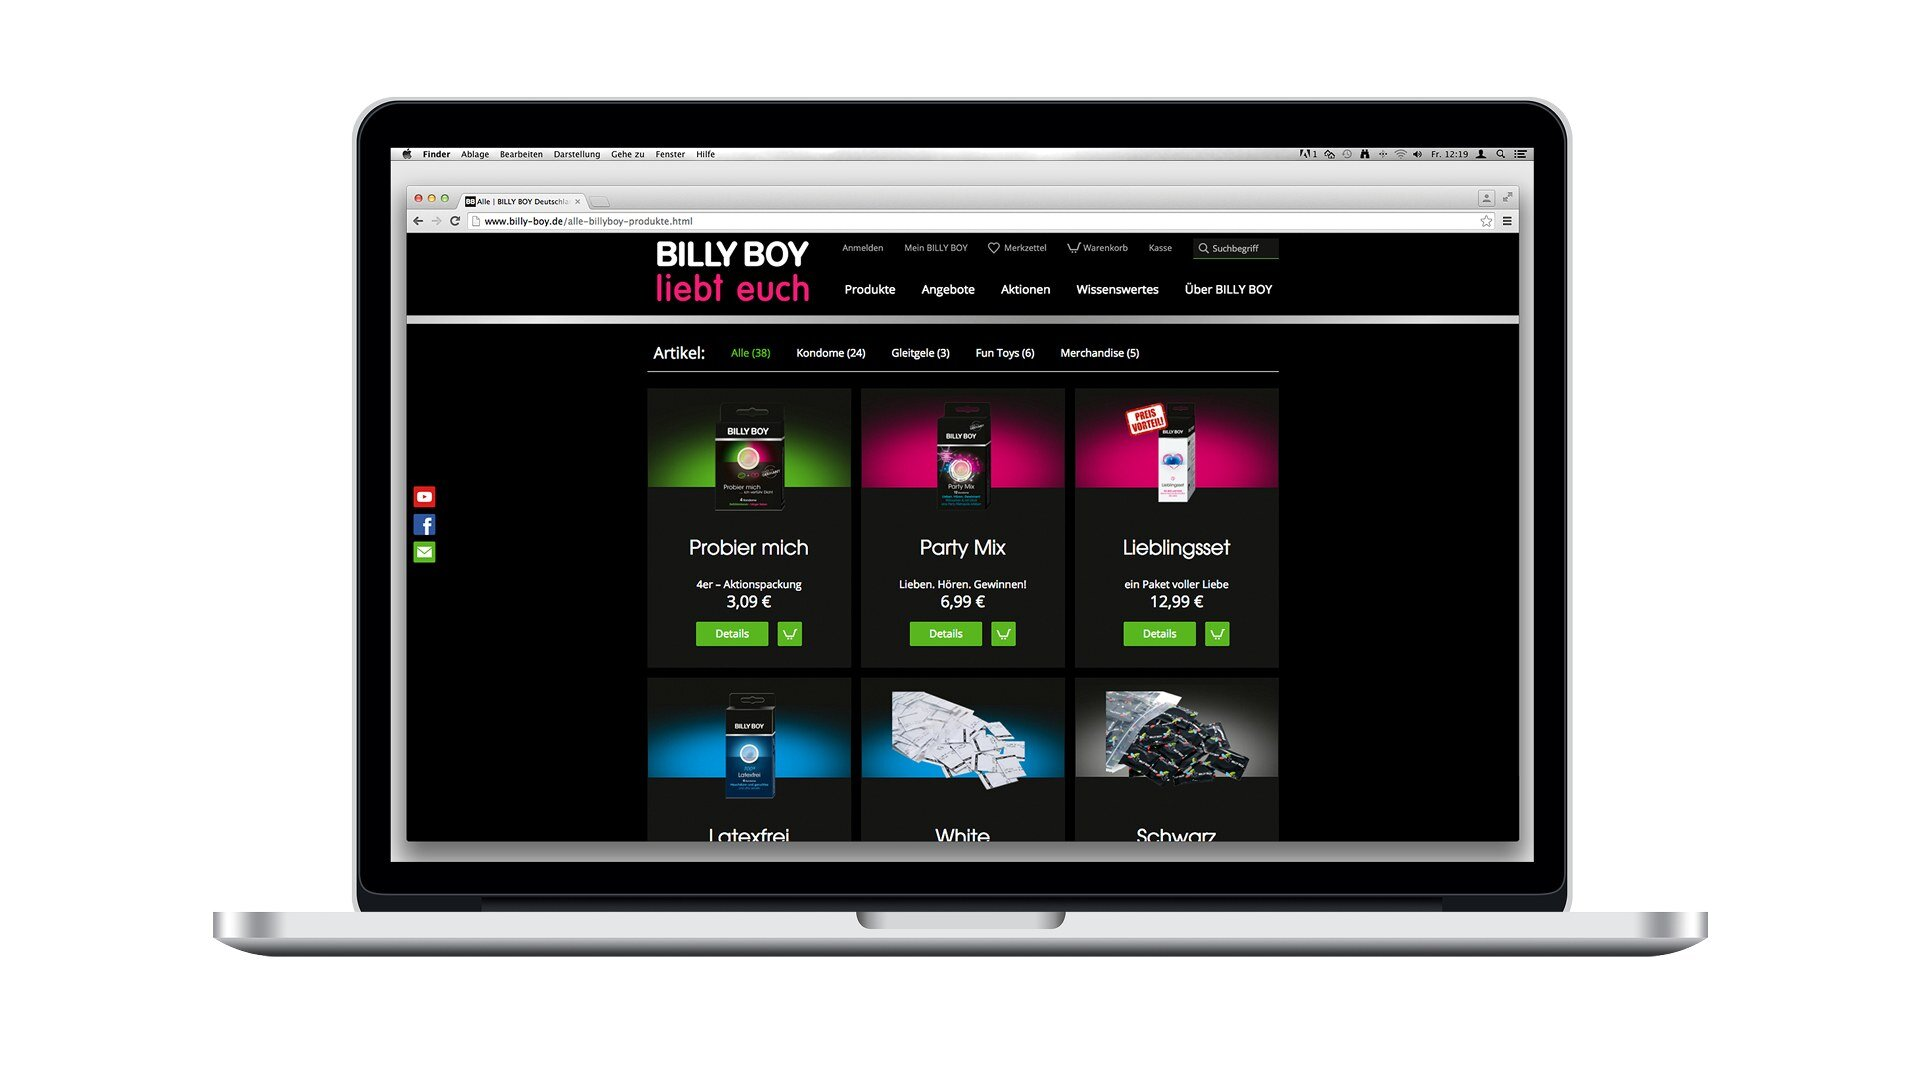 Landingpage nach Relaunch der Billy Boy Webseite, .jpg